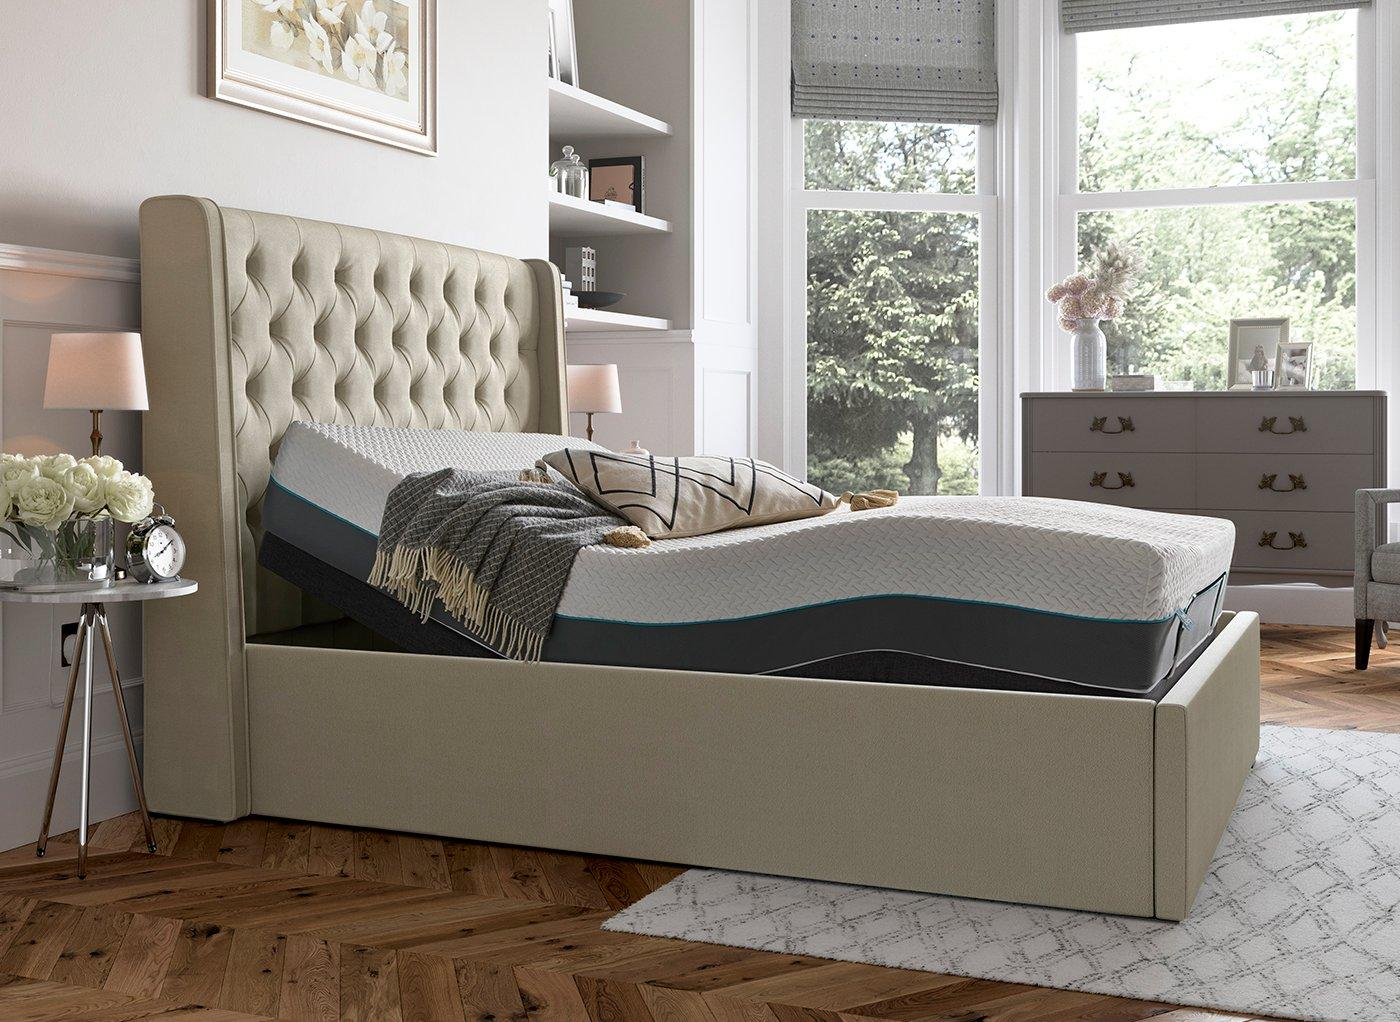 deacon-sleepmotion-200i-adjustable-upholstered-bed-frame